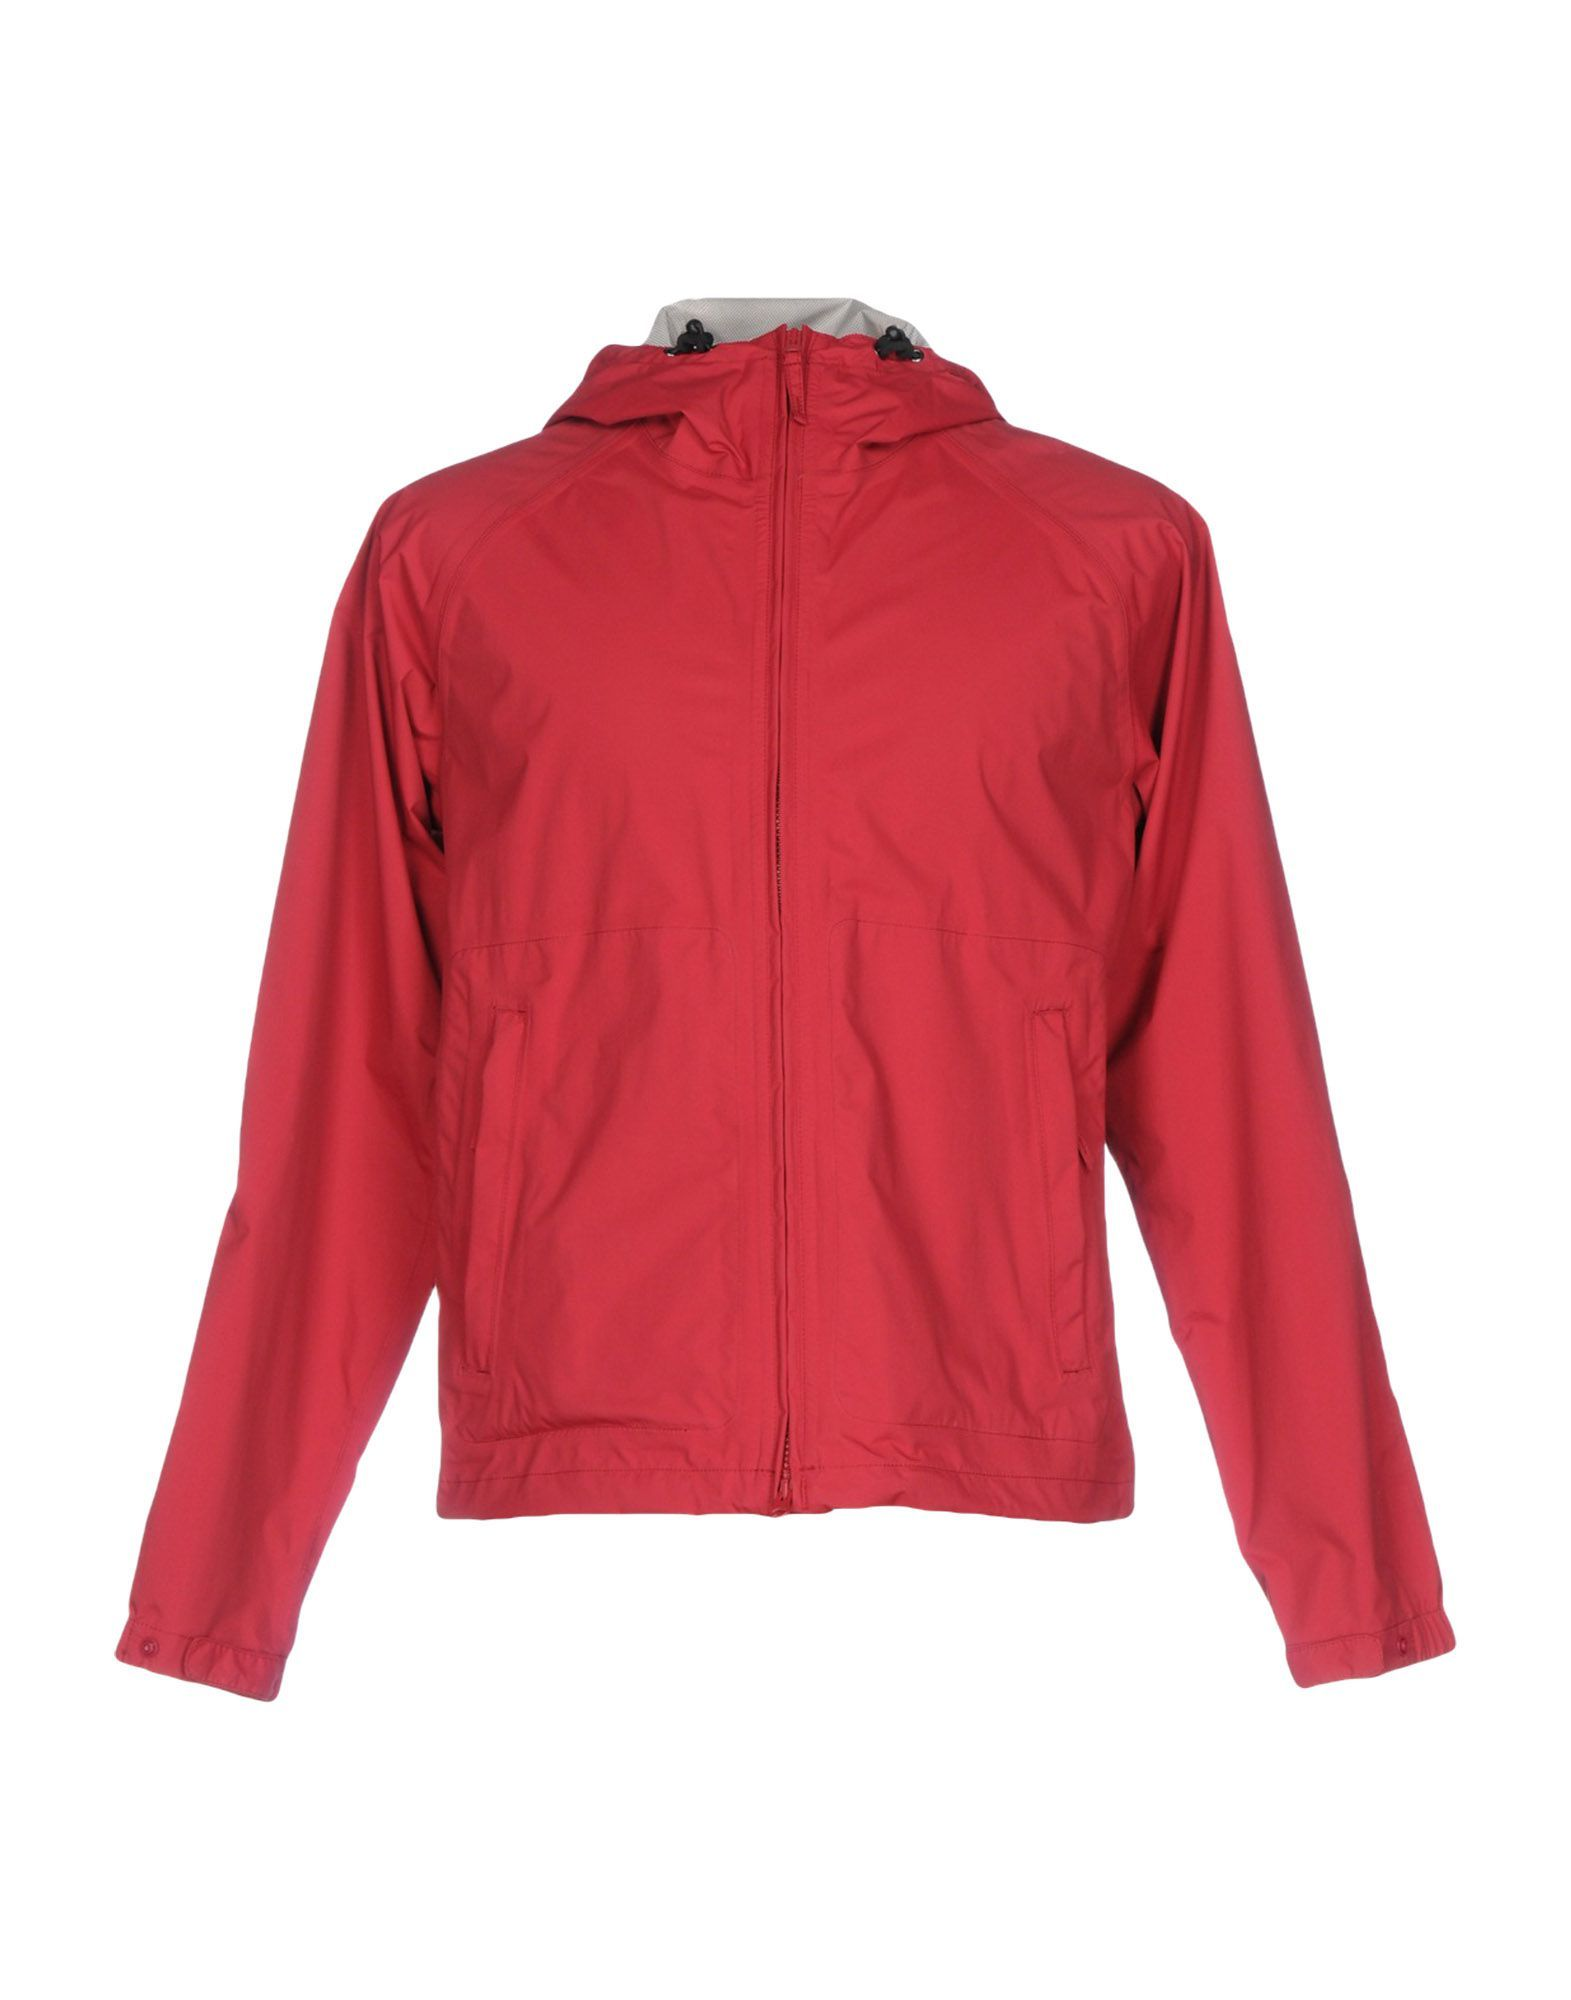 Aspesi Maroon Techno Fabric Jacket